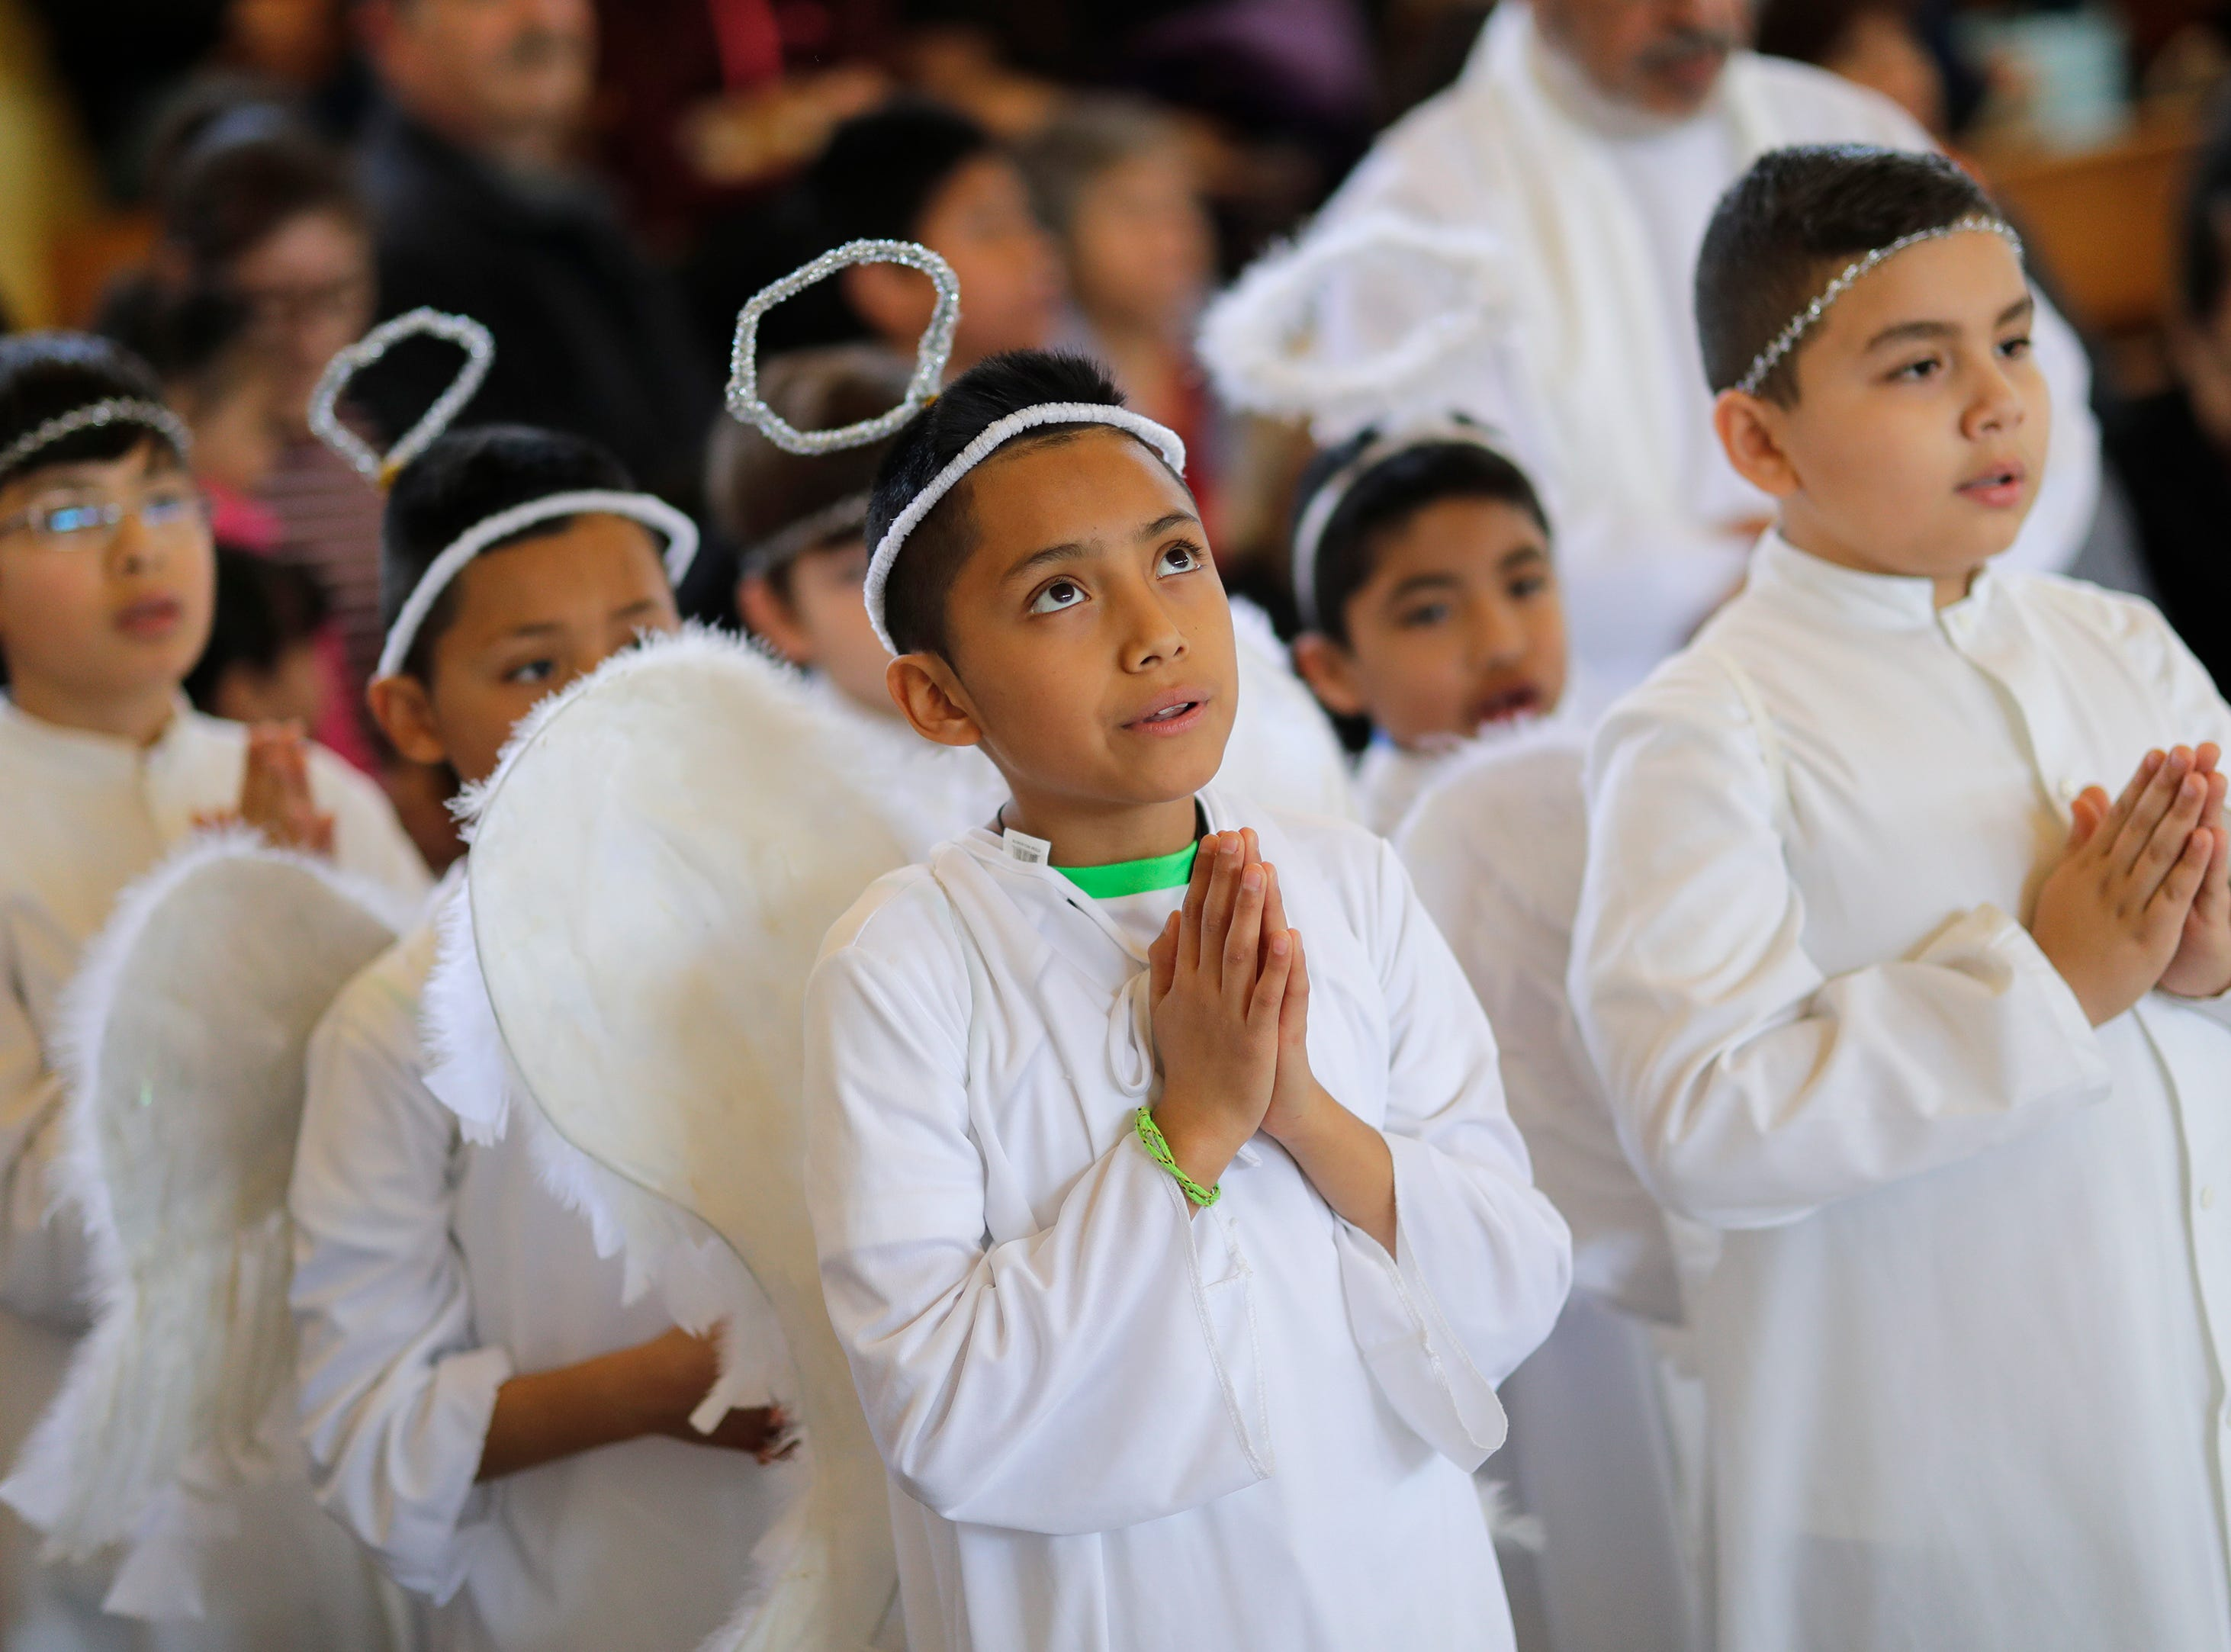 St. Therese Parish members Josue Vazqueze-Zacrias, 10, left, and Roberto Gonzalez, 10, participate in a Passion Play and the Stations of the Cross Friday, April 19, 2019, in Appleton, Wis. Dan Powers/USA TODAY NETWORK-Wisconsin